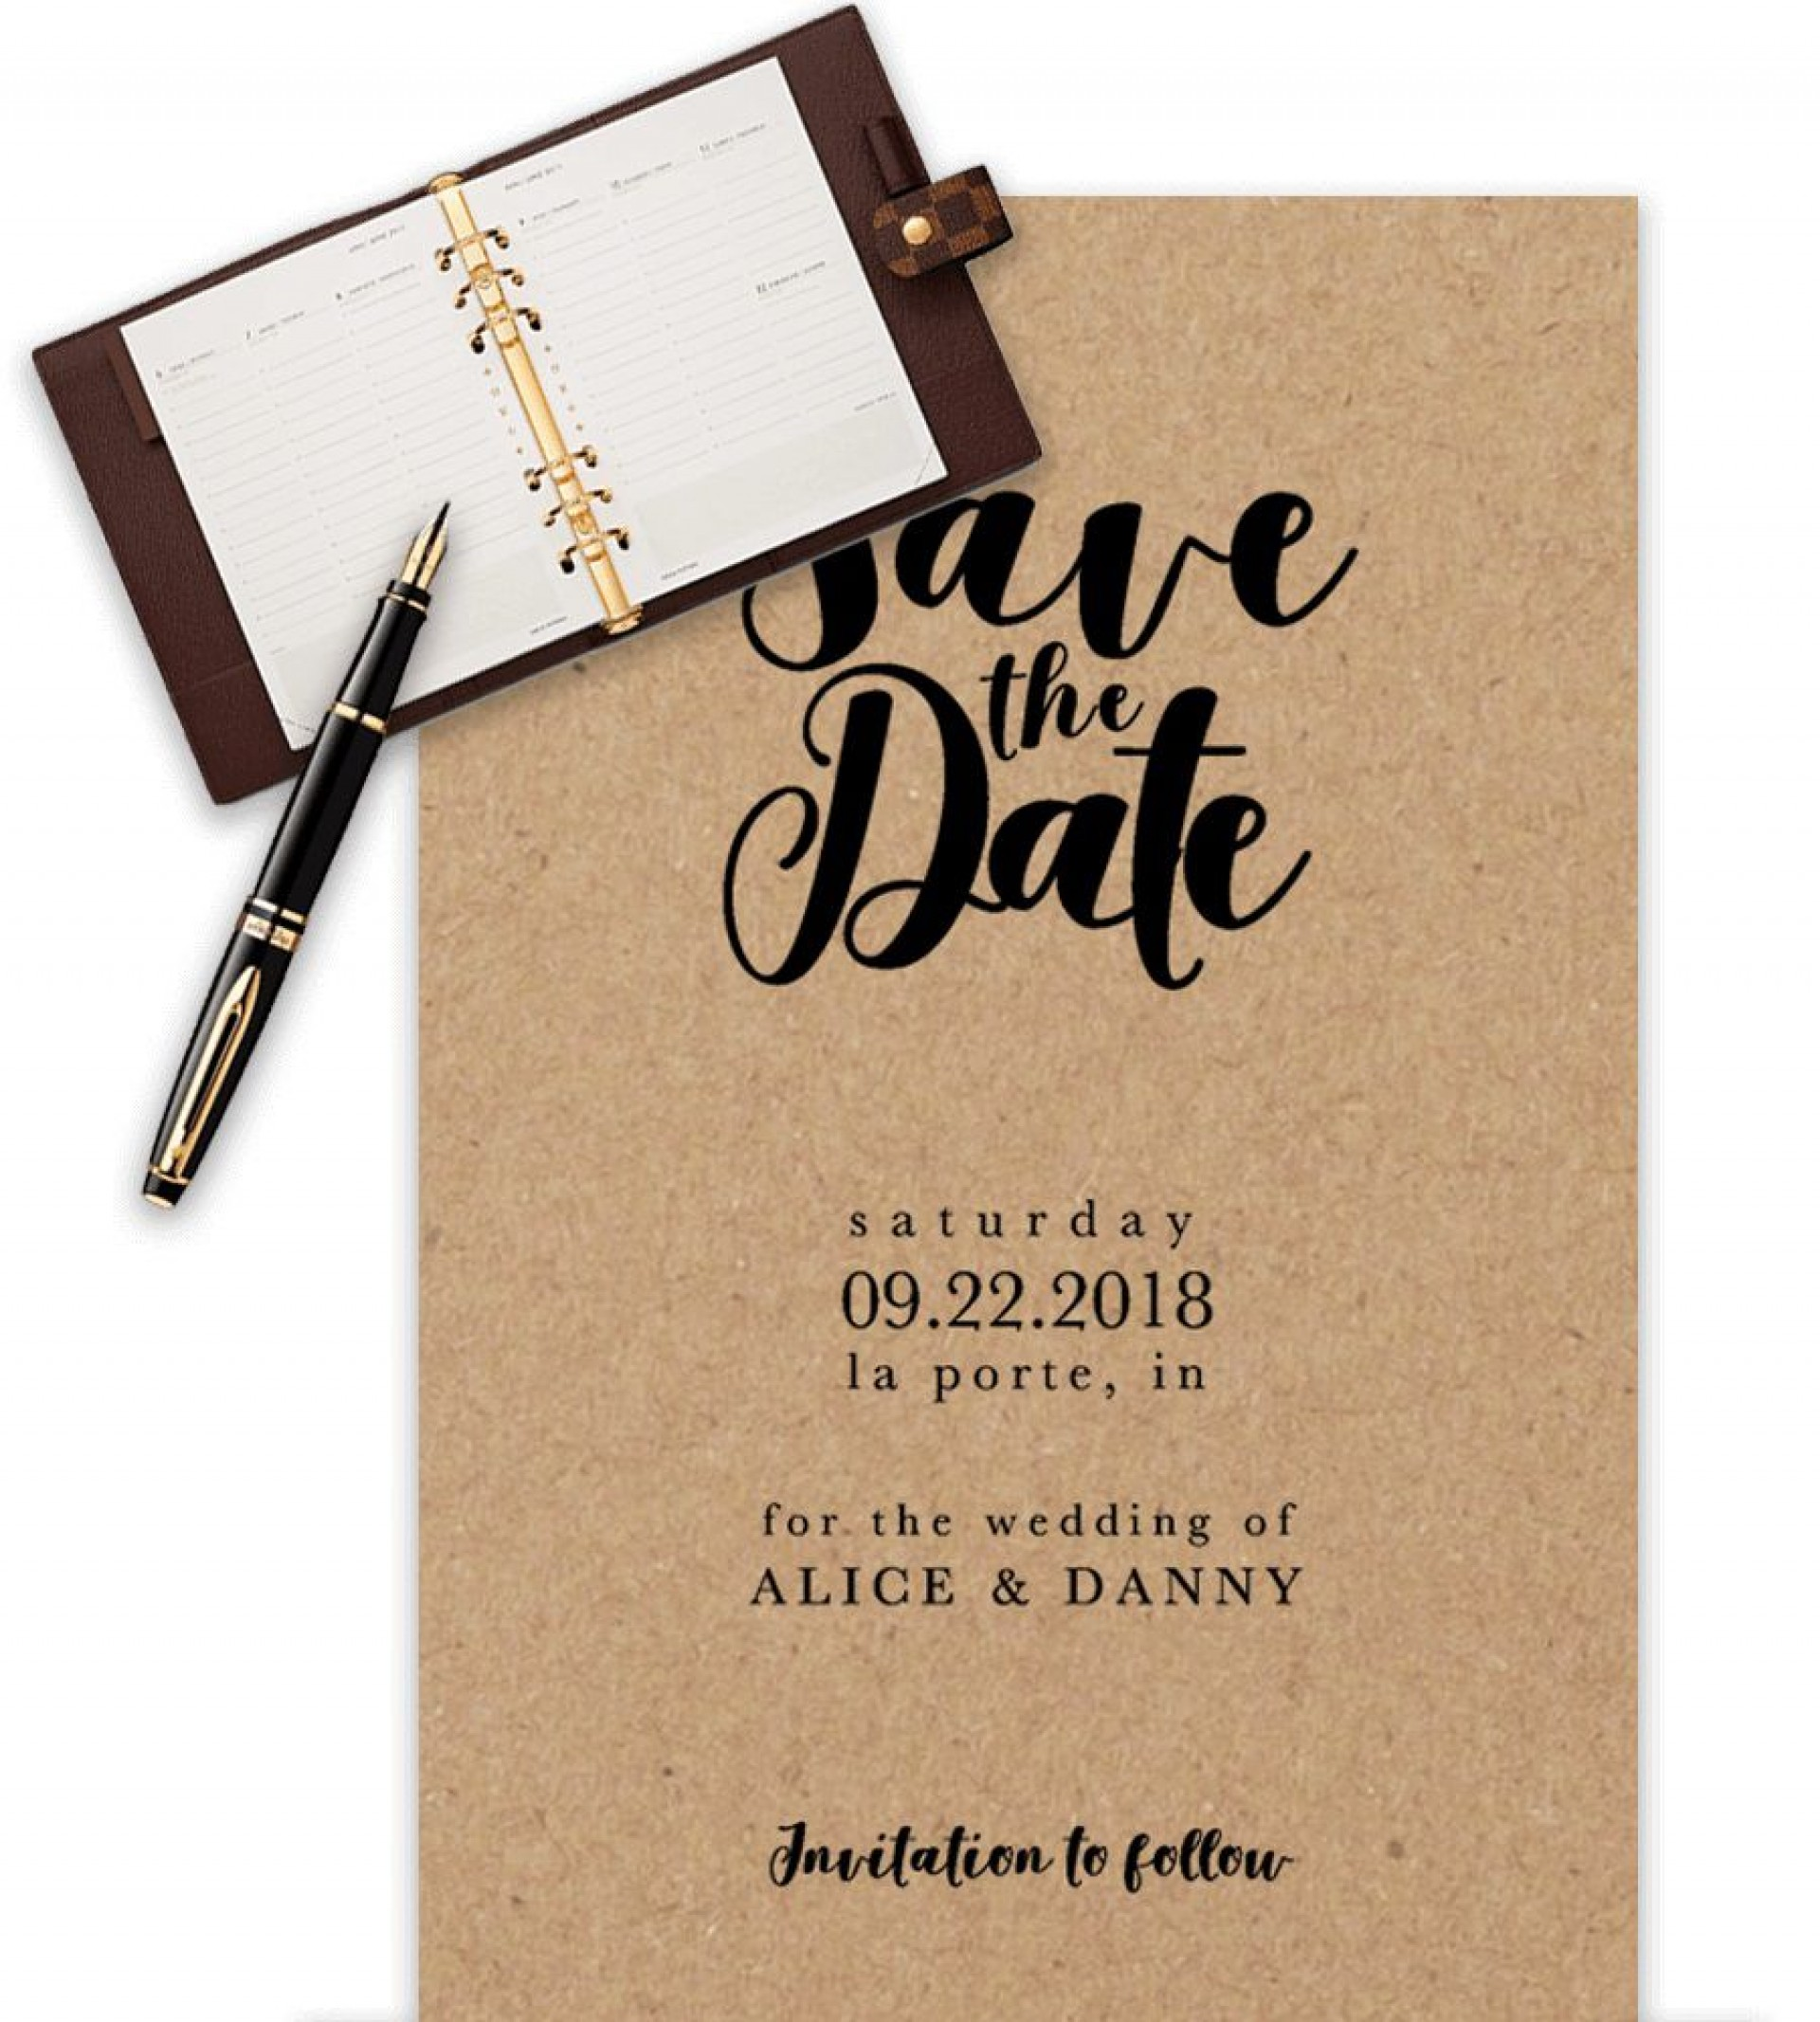 009 Breathtaking Save The Date Template Word High Definition  Free Customizable For Holiday Party1920